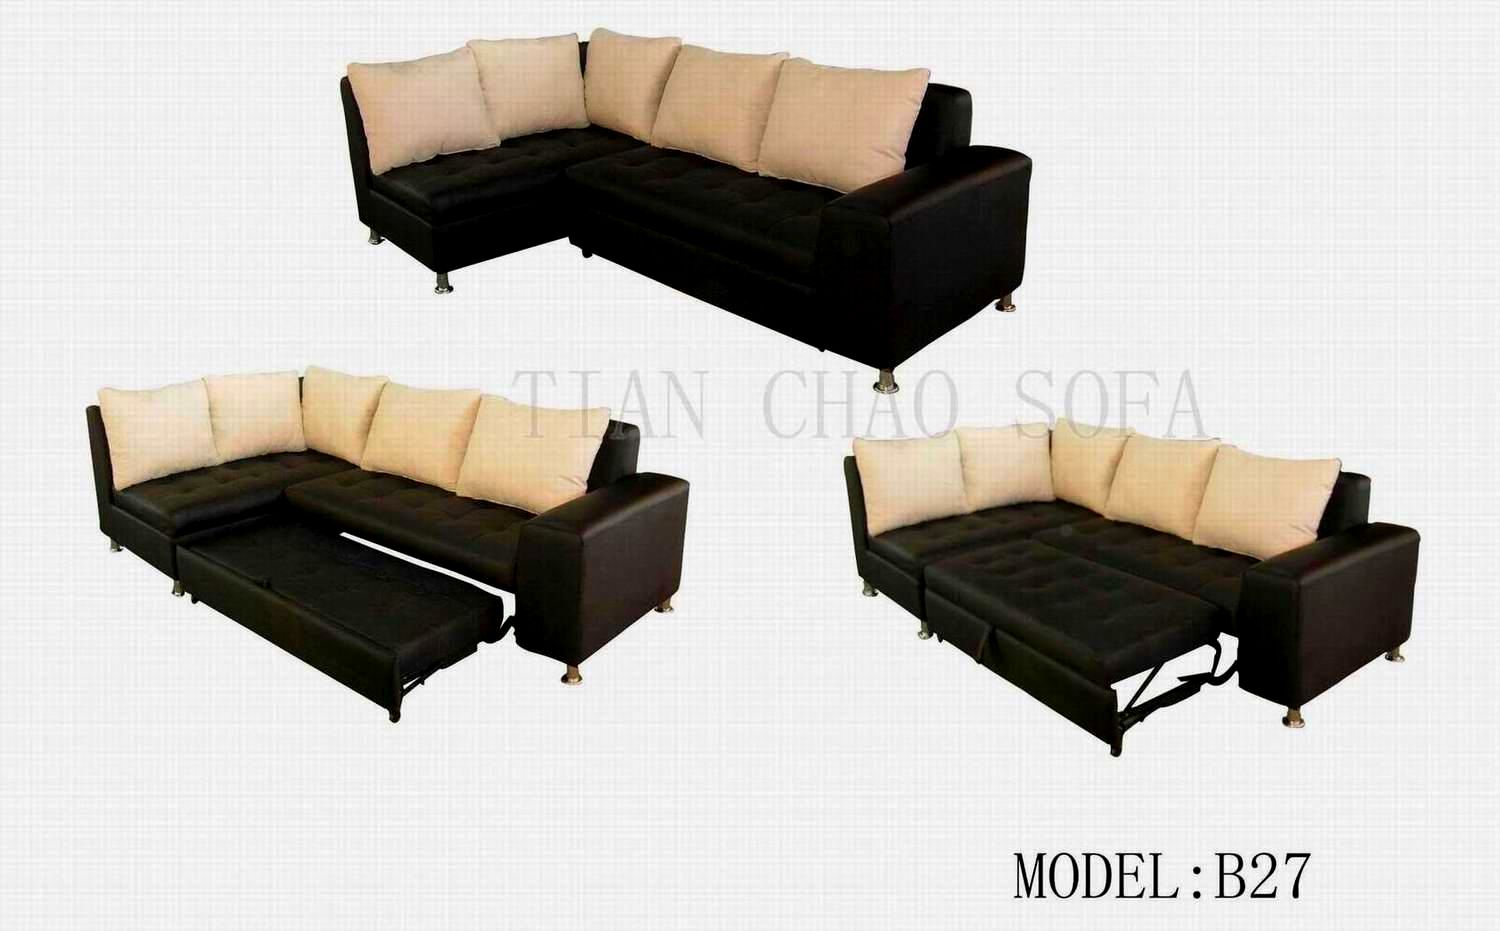 terrific pull out sleeper sofa online-Superb Pull Out Sleeper sofa Layout